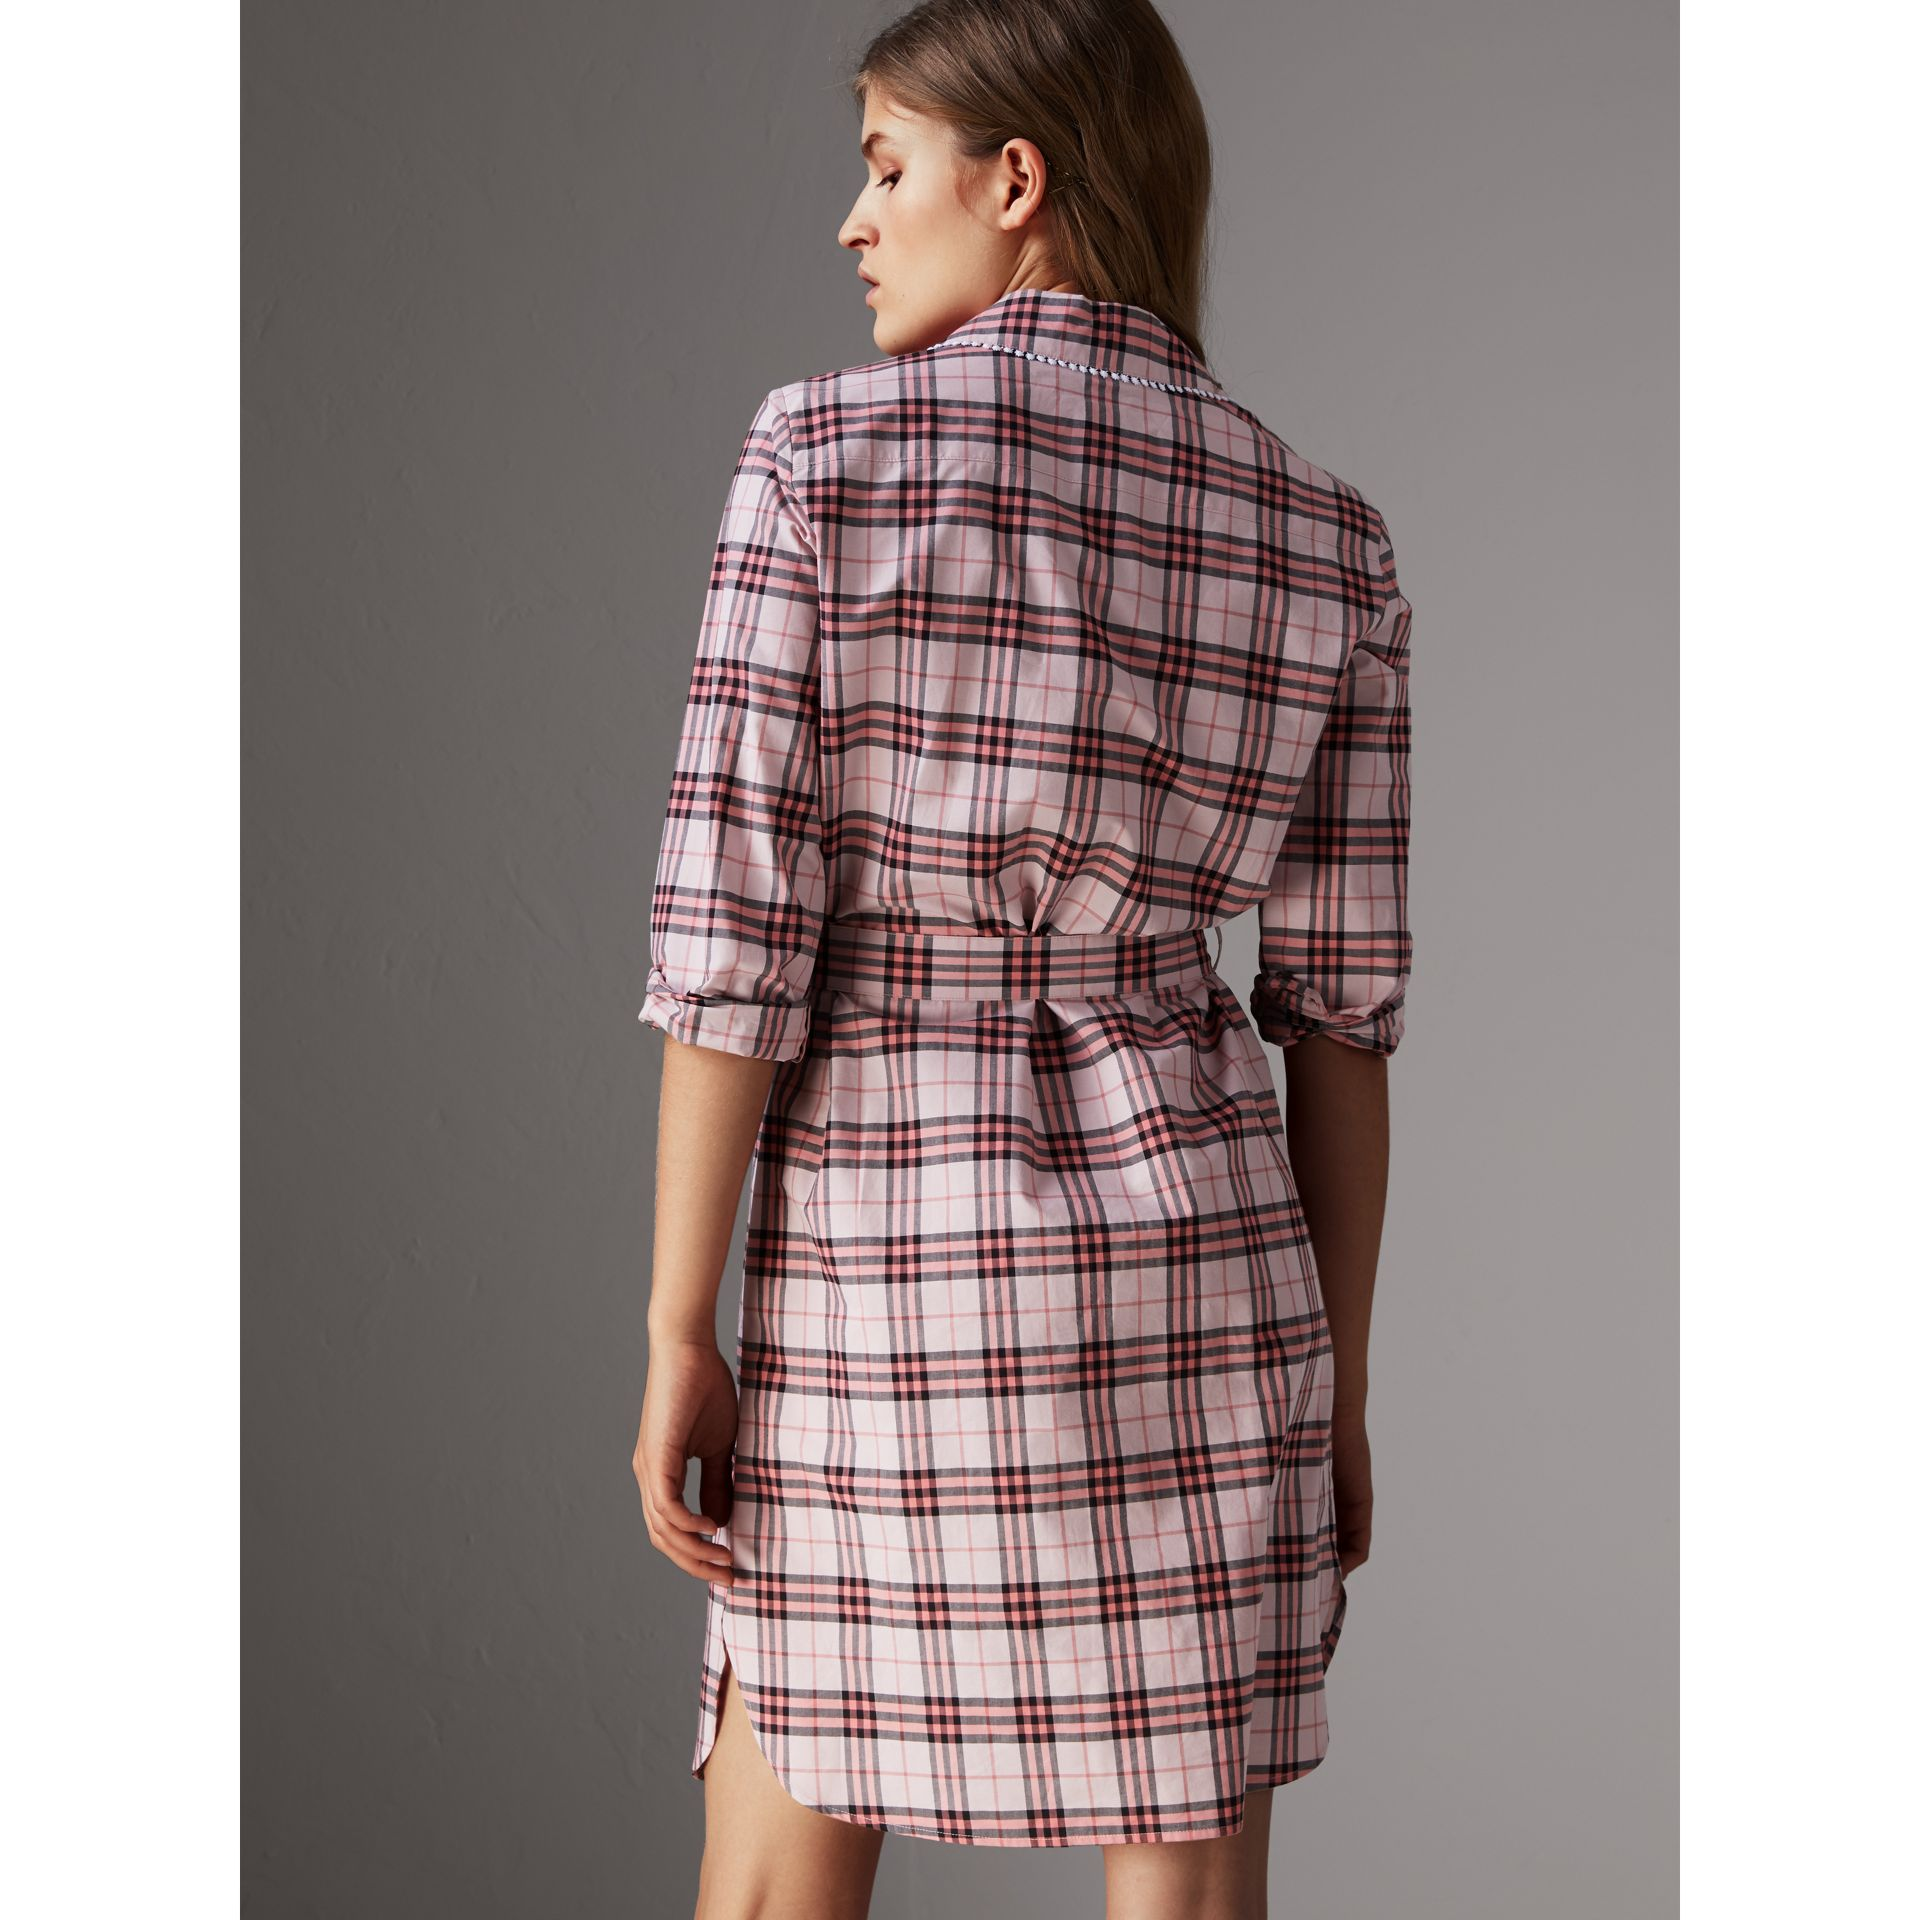 Lace Trim Collar Check Cotton Shirt Dress in Pink Azalea - Women | Burberry Singapore - gallery image 2